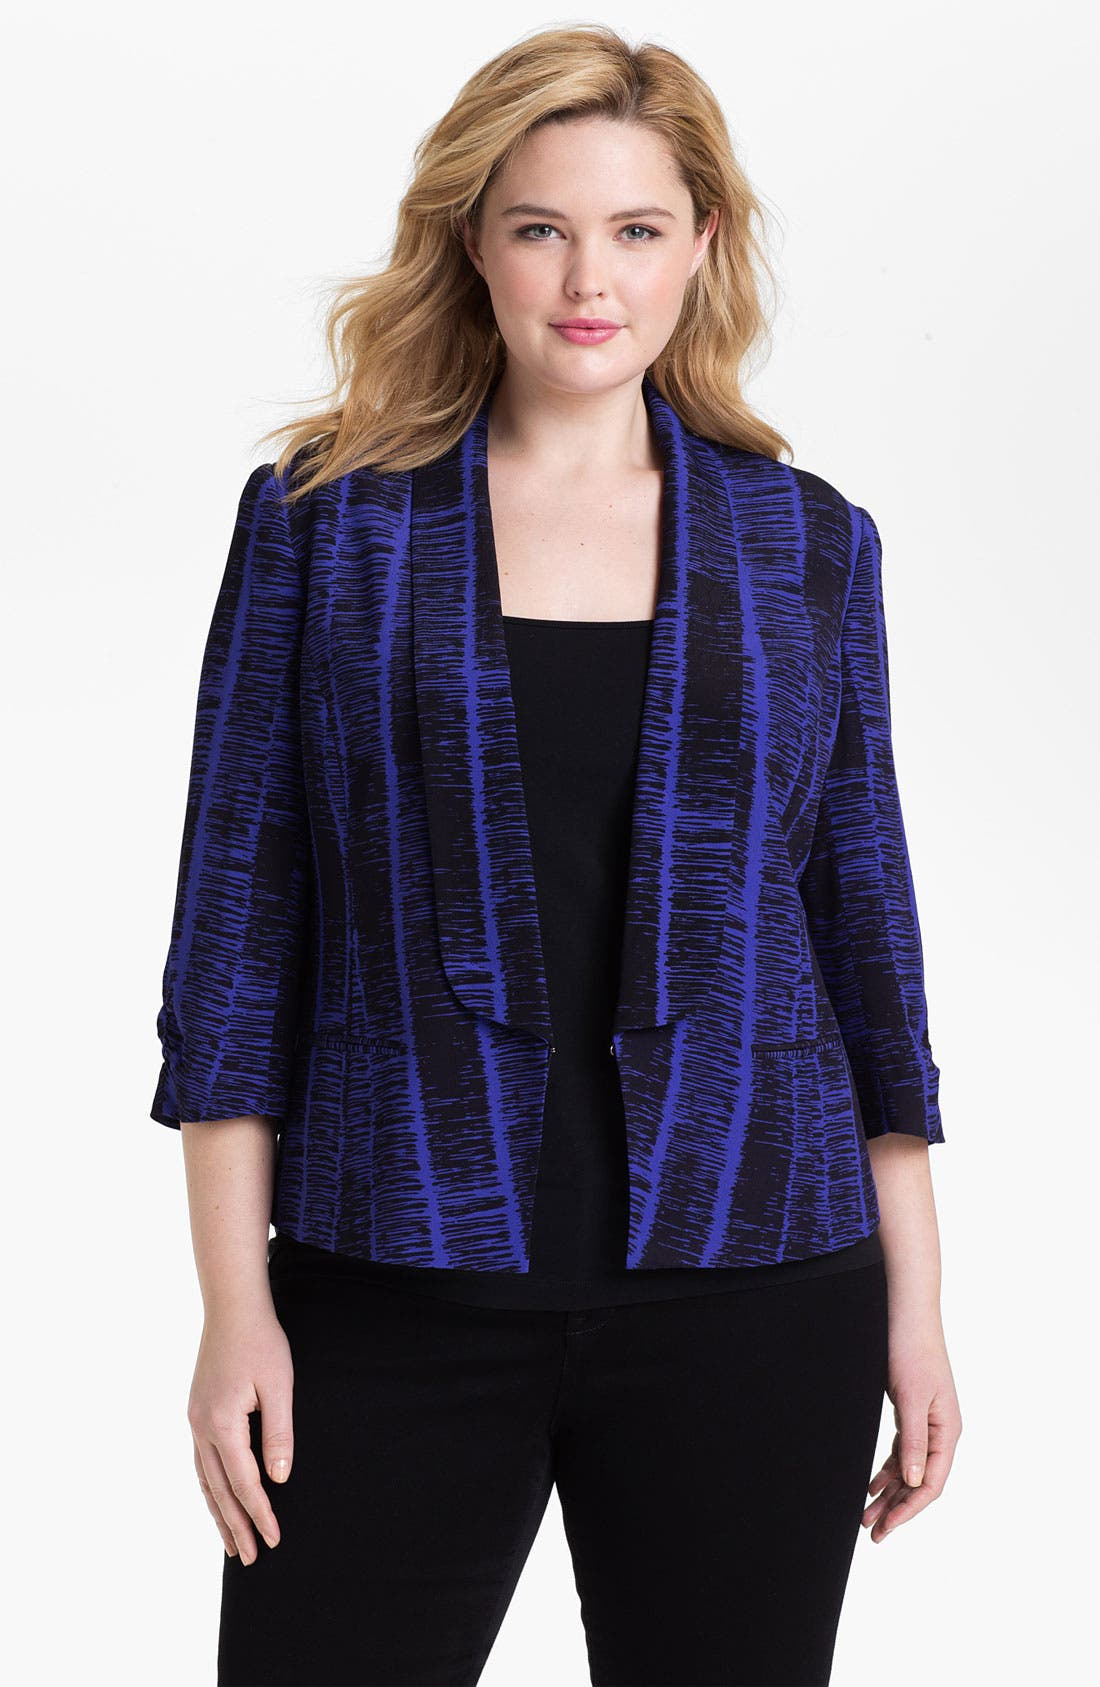 Alternate Image 1 Selected - Sejour Print Tuxedo Jacket (Plus Size)